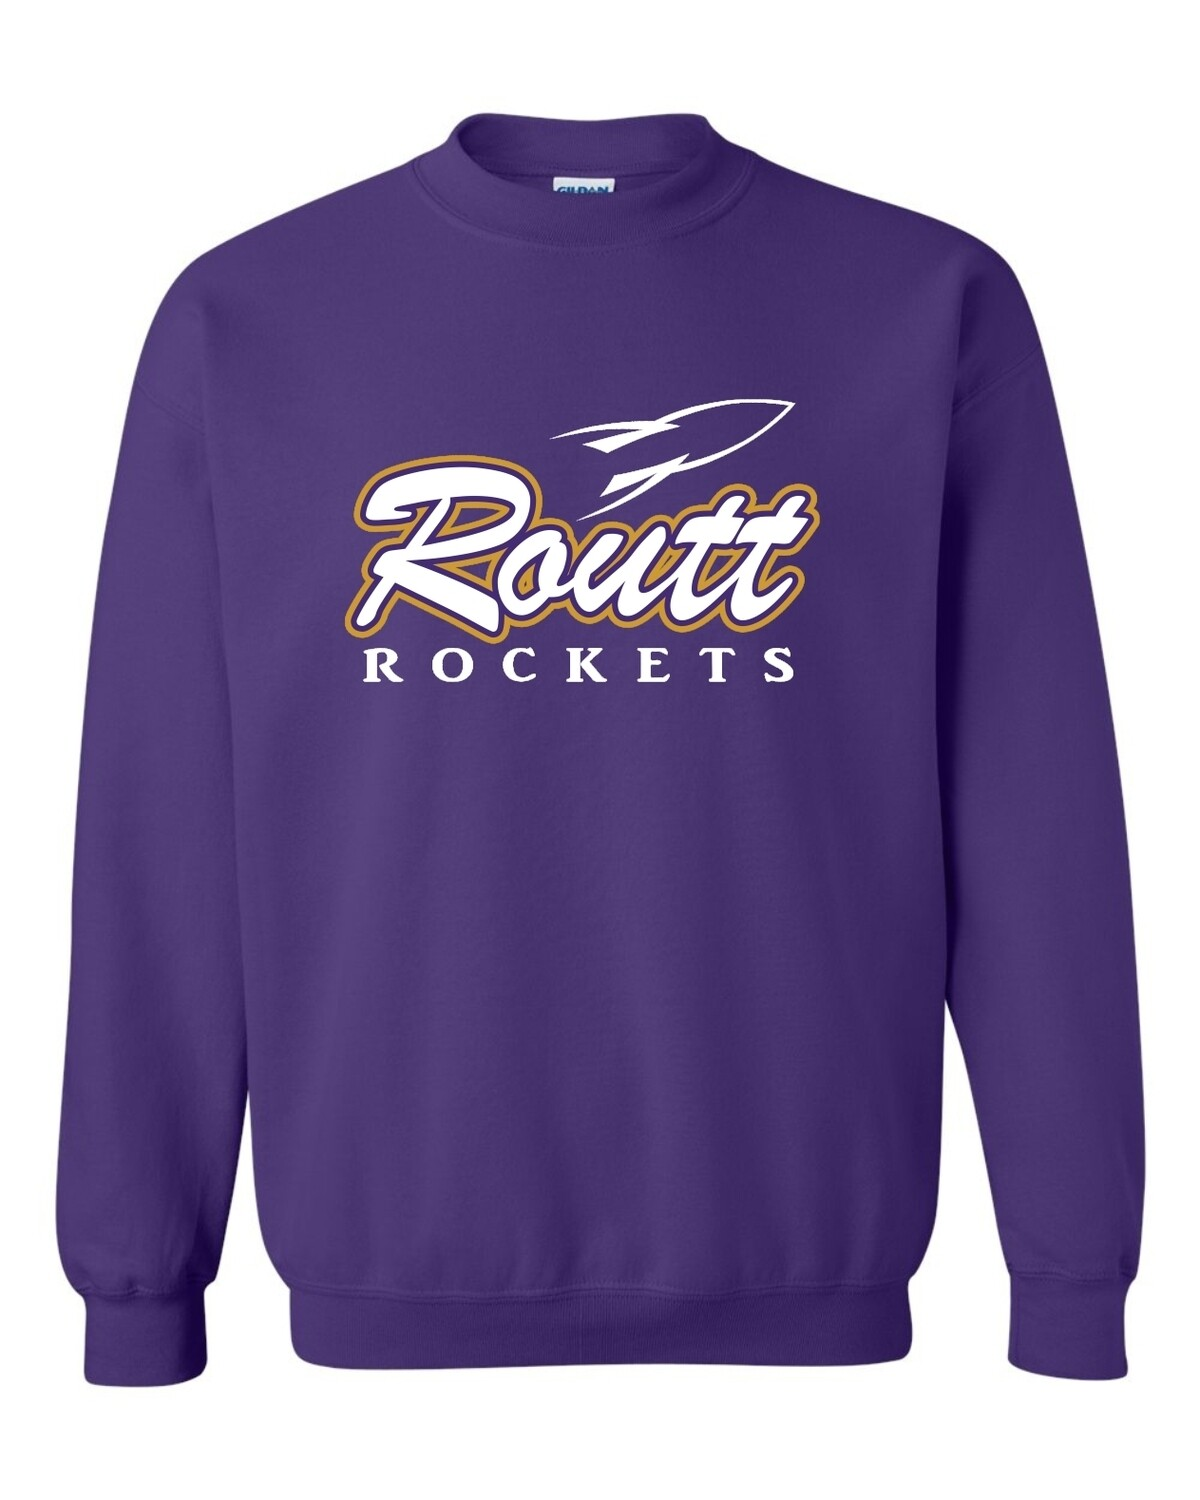 ROUTT-ROCKETS PURPLE-Gildan - Heavy Blend Crewneck Sweatshirt